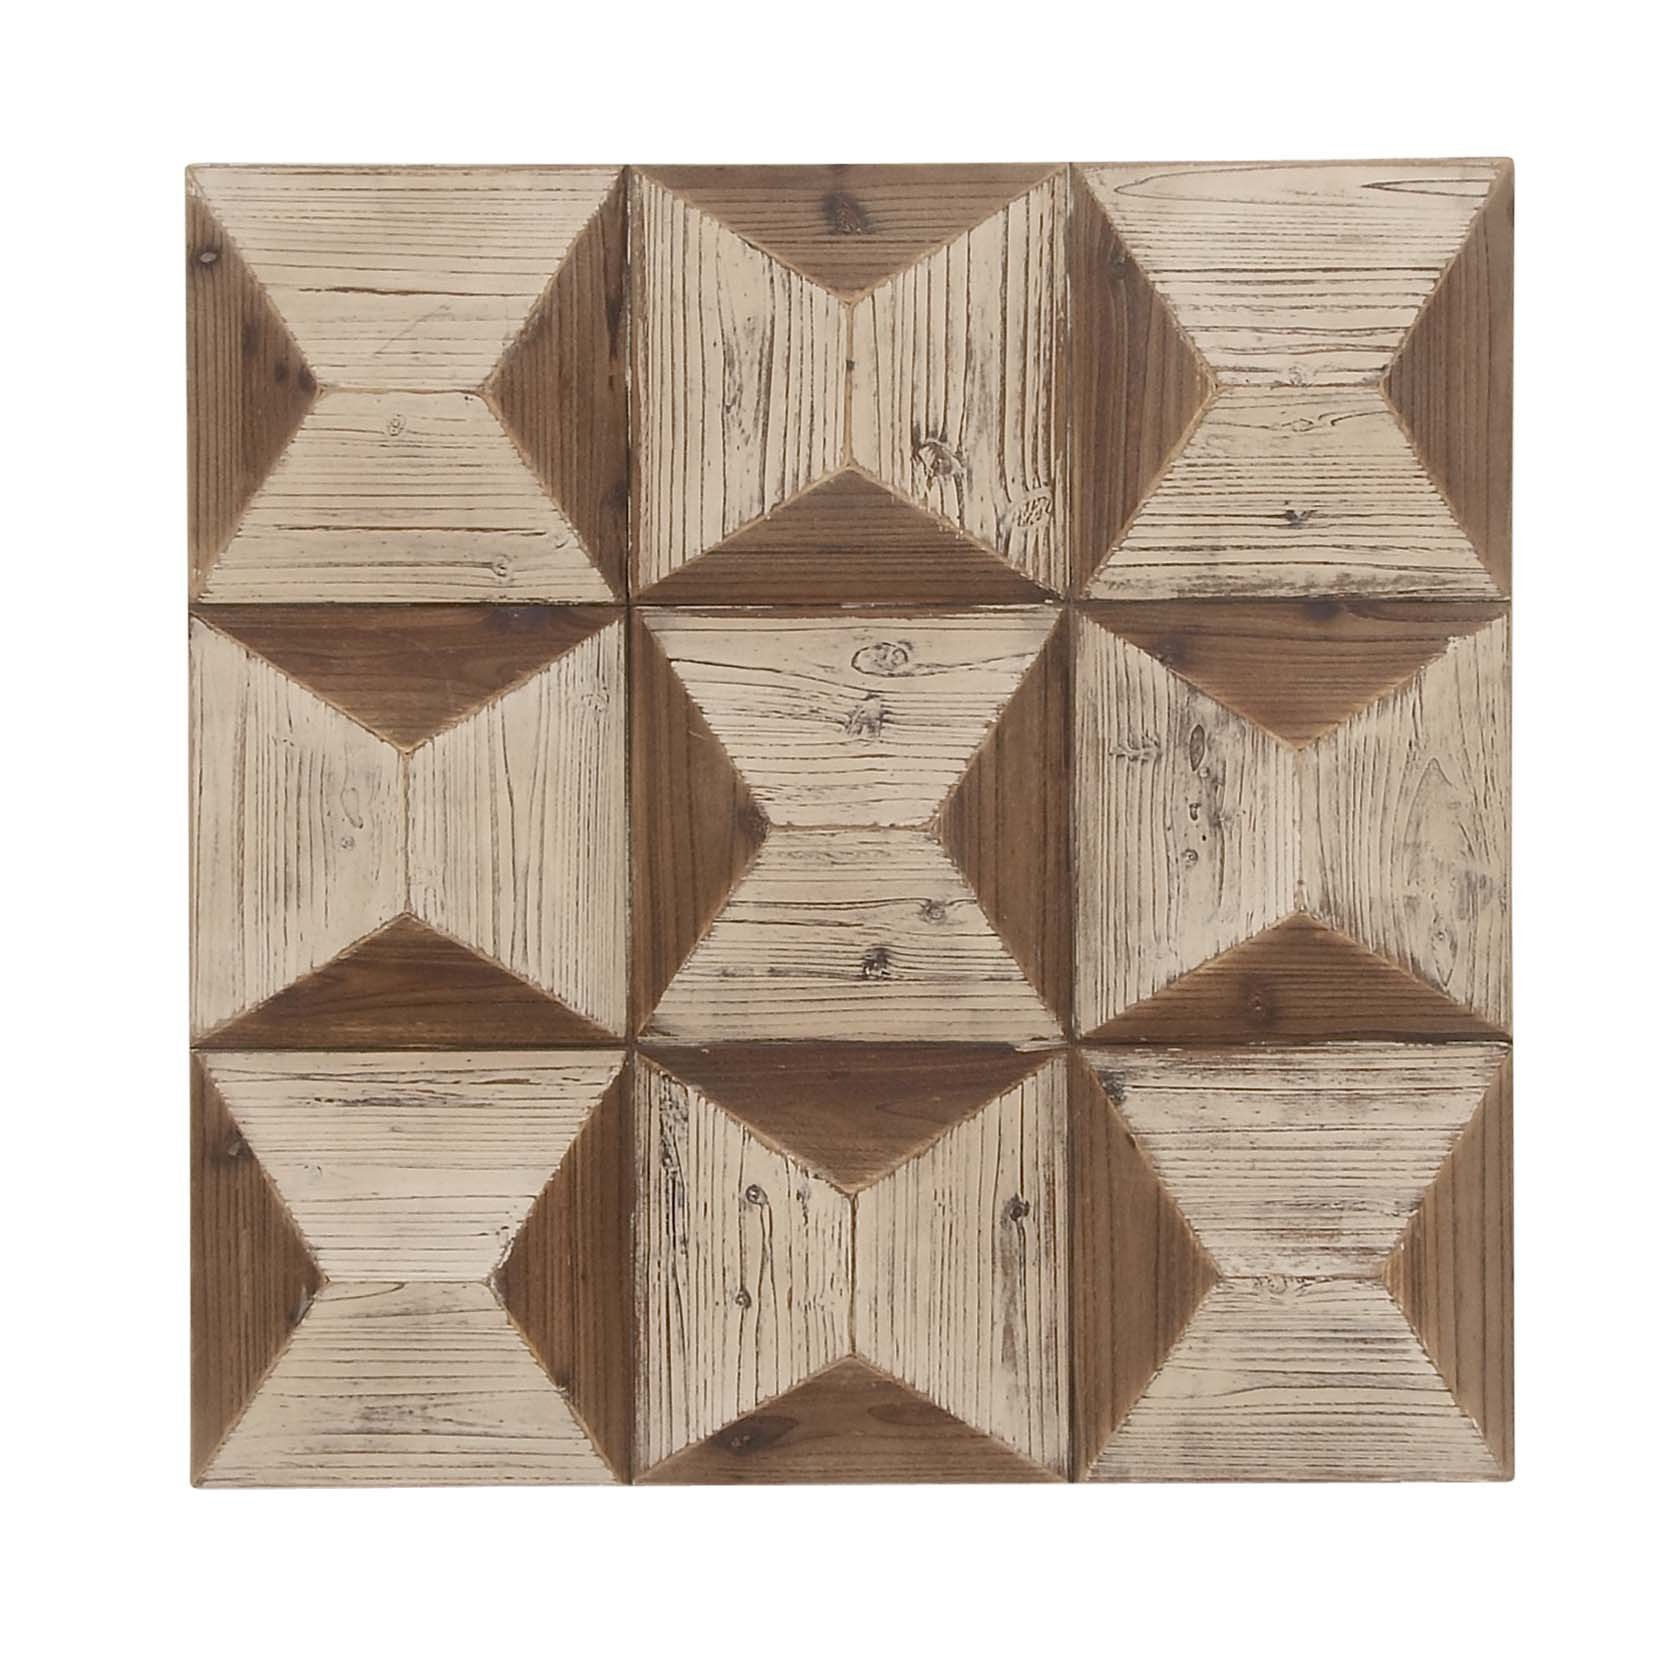 Deco 79 98733 Square Wooden Wall Panel, 30'' x 30'', Brown/White